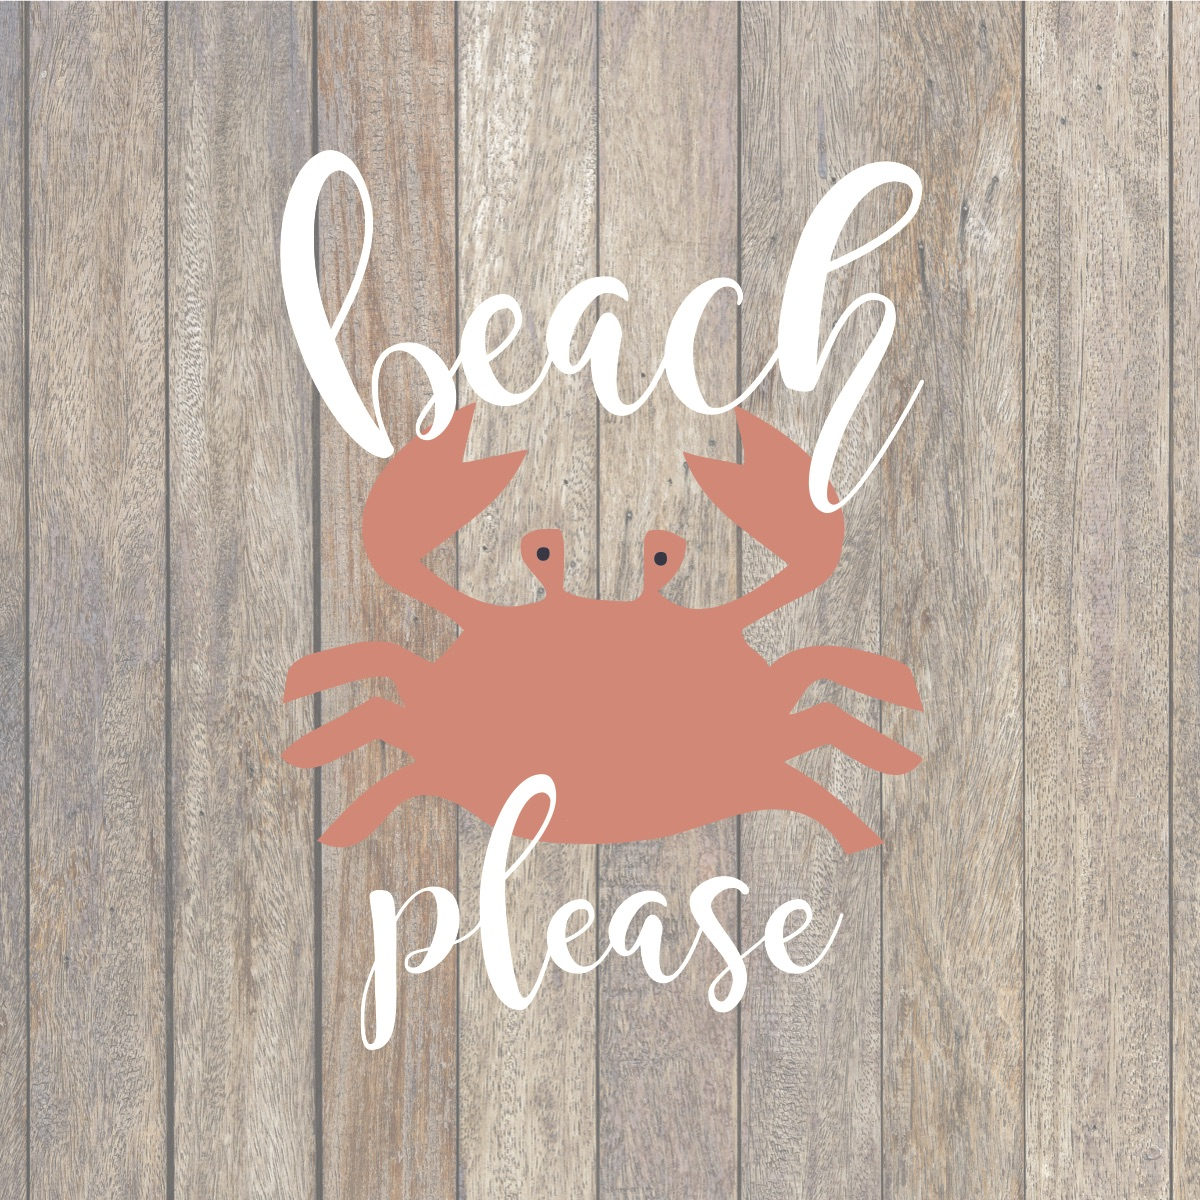 Beach Please Svg Shirt Hand Made Svg Beach